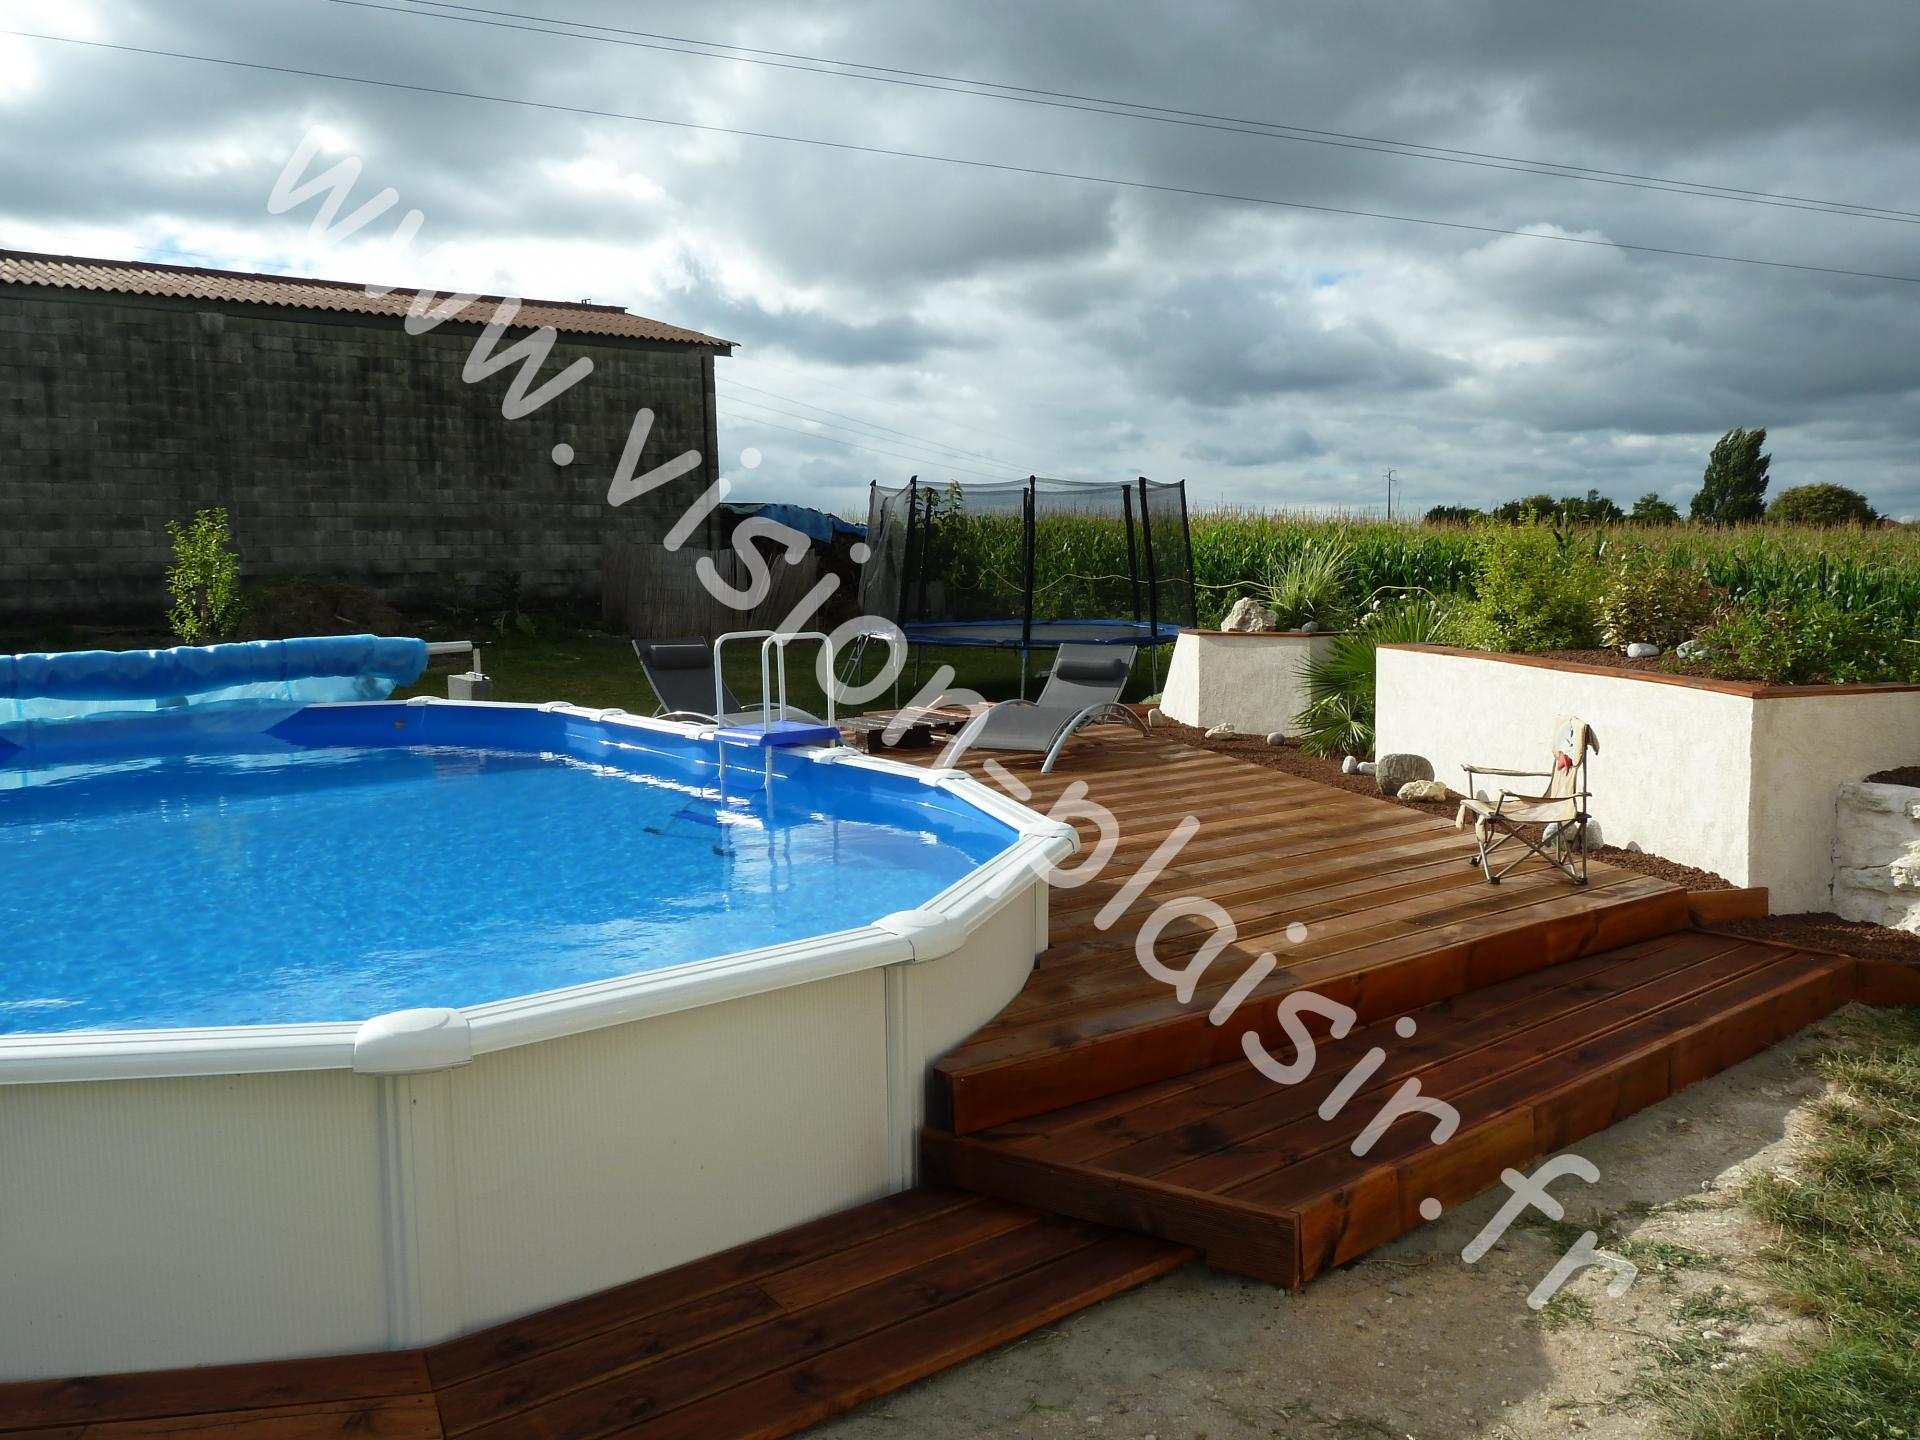 blog de vision plaisir piscine hors sol semi enterr e On piscine hors sol semi enterree